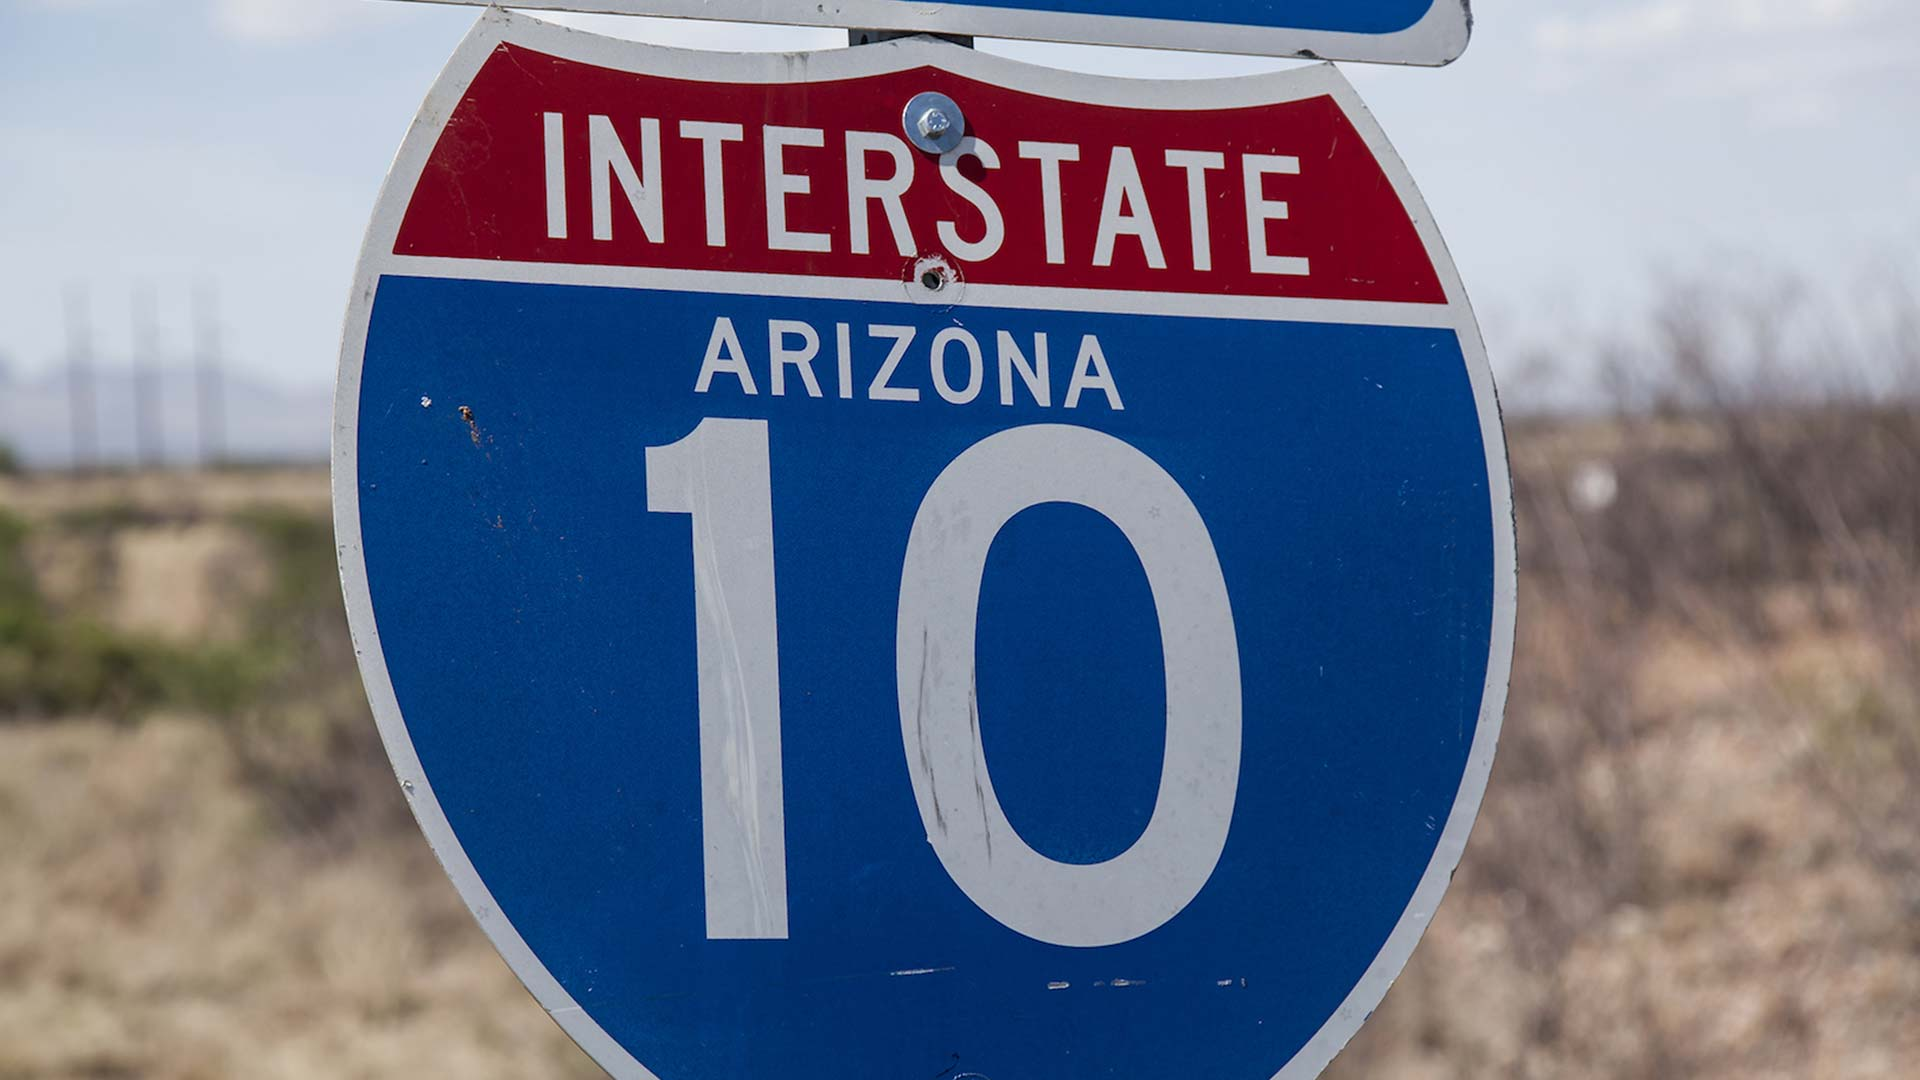 ADOT crews will begin widening I-10 to three lanes at Casa Grande next week.